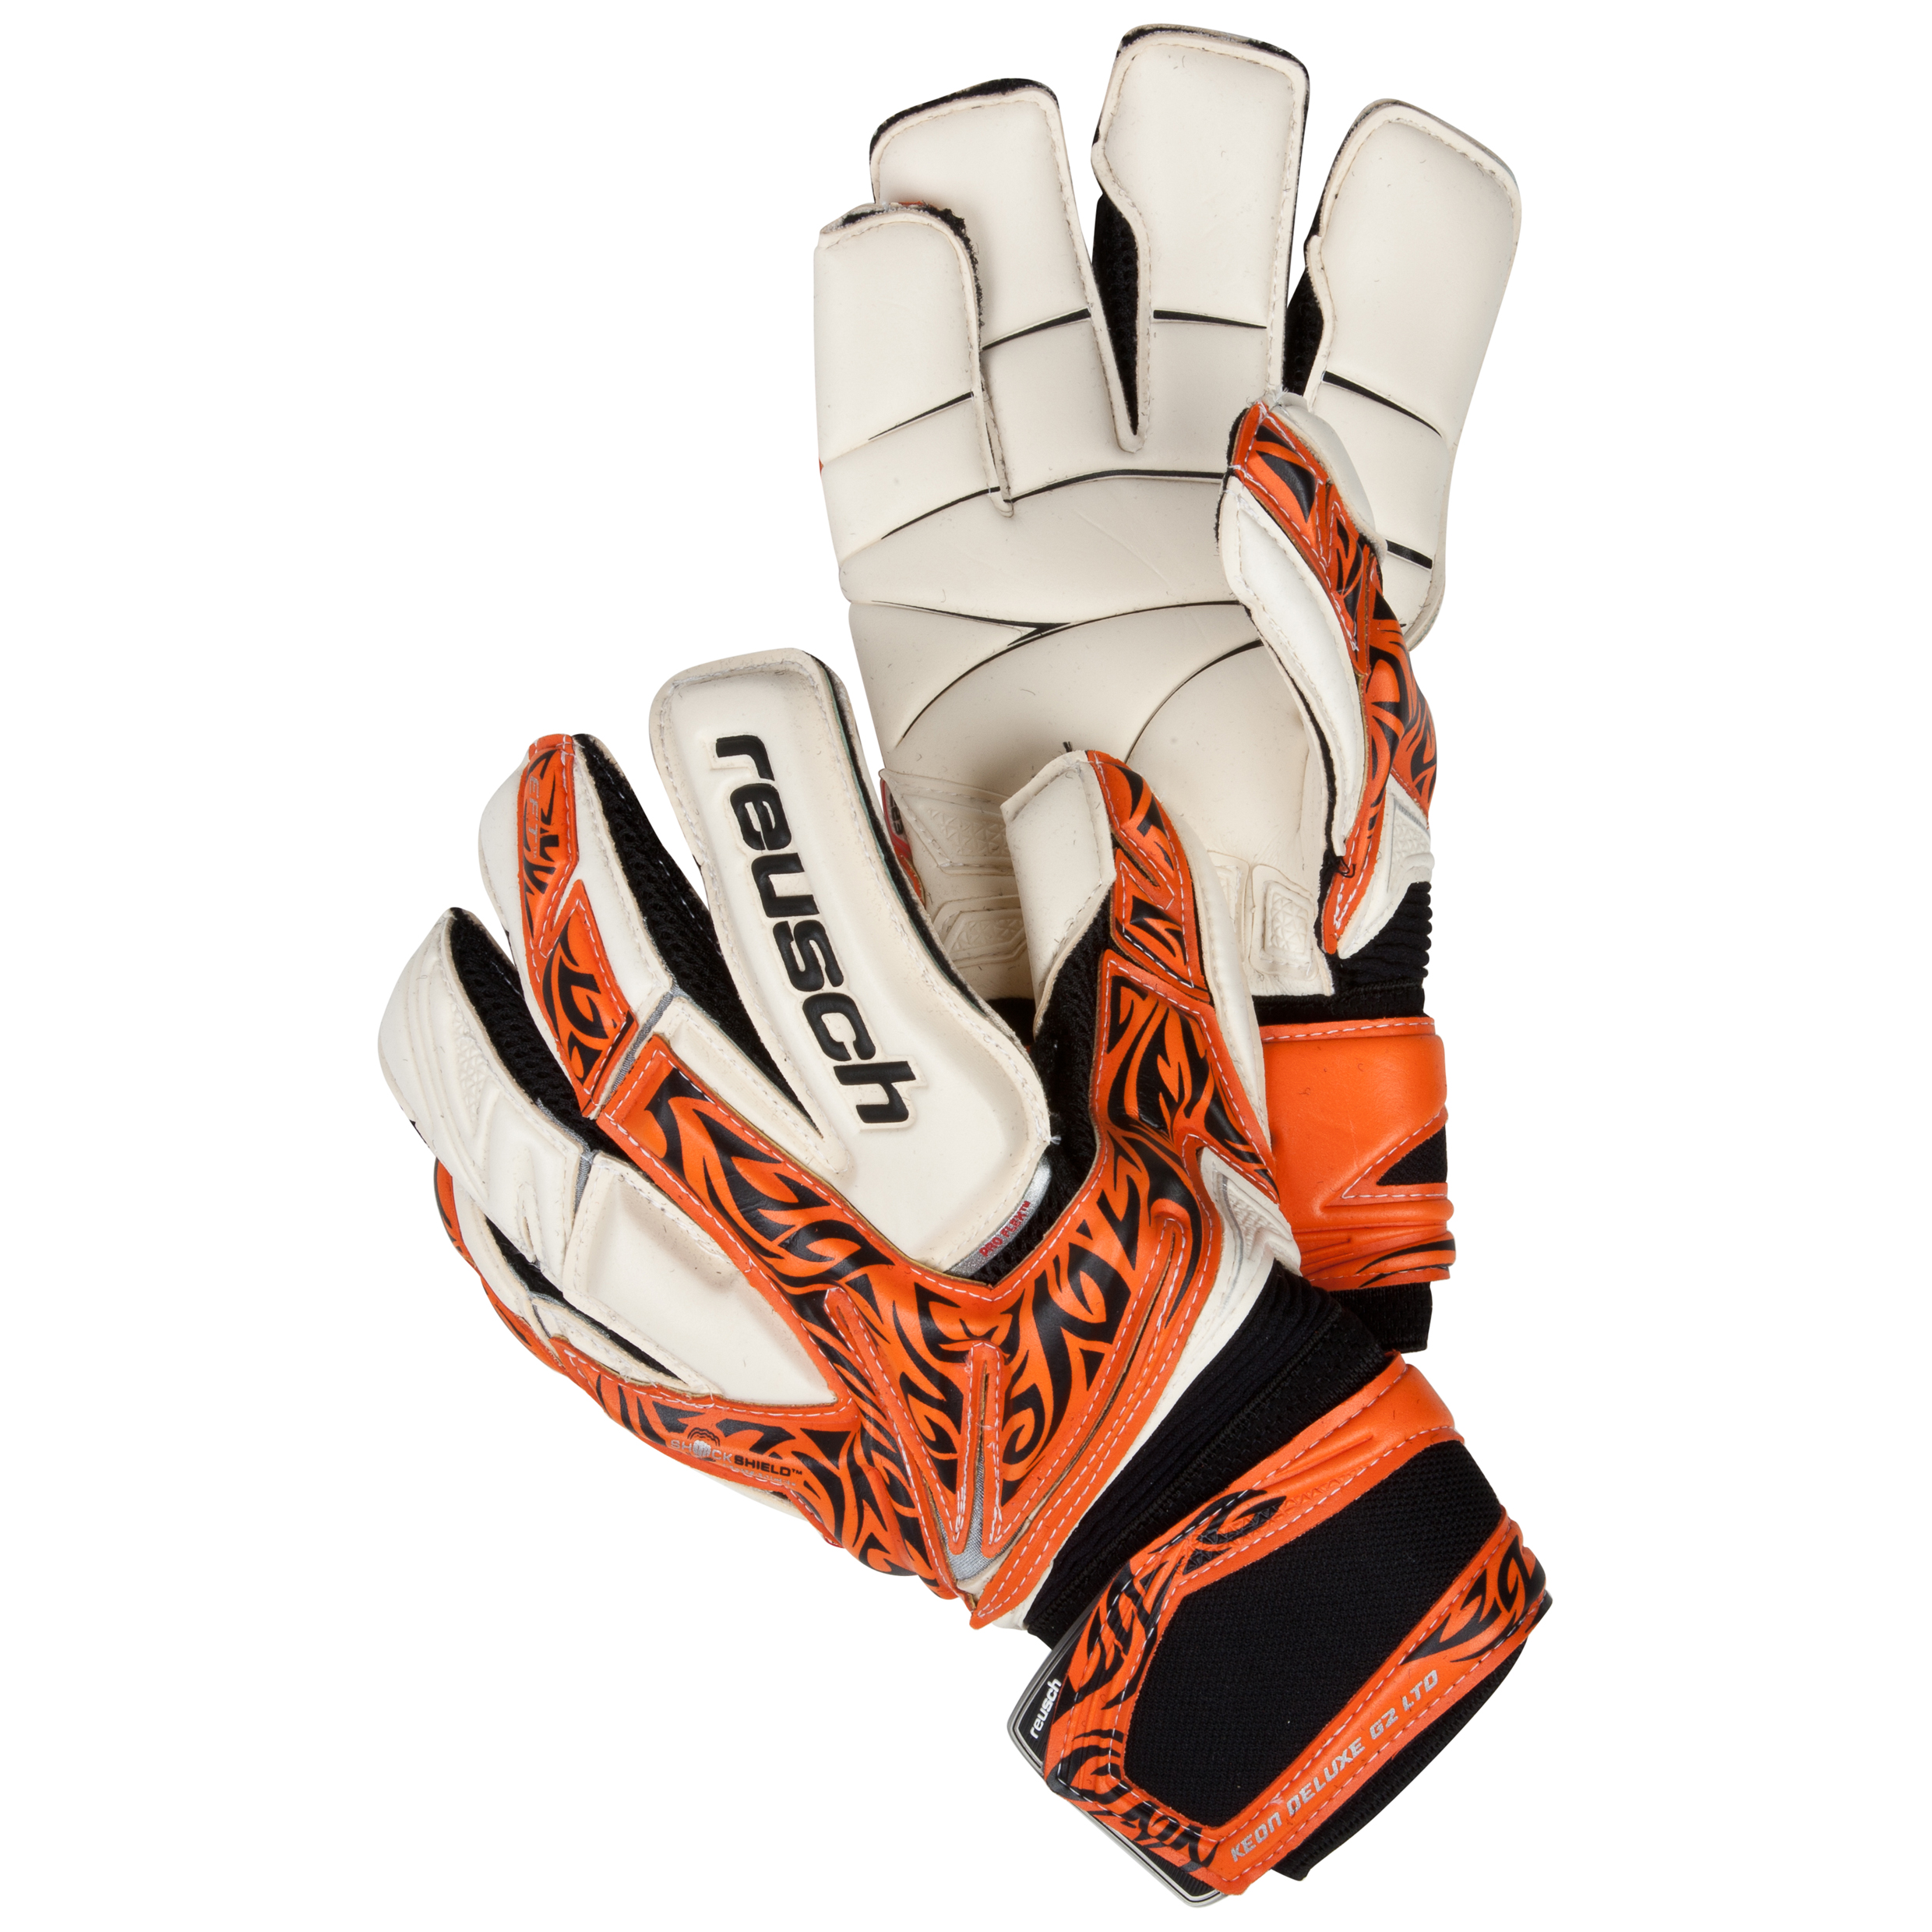 Reusch Keon Deluxe G2 LTD?Goalkeeper Gloves-Orange/Black/Ltd